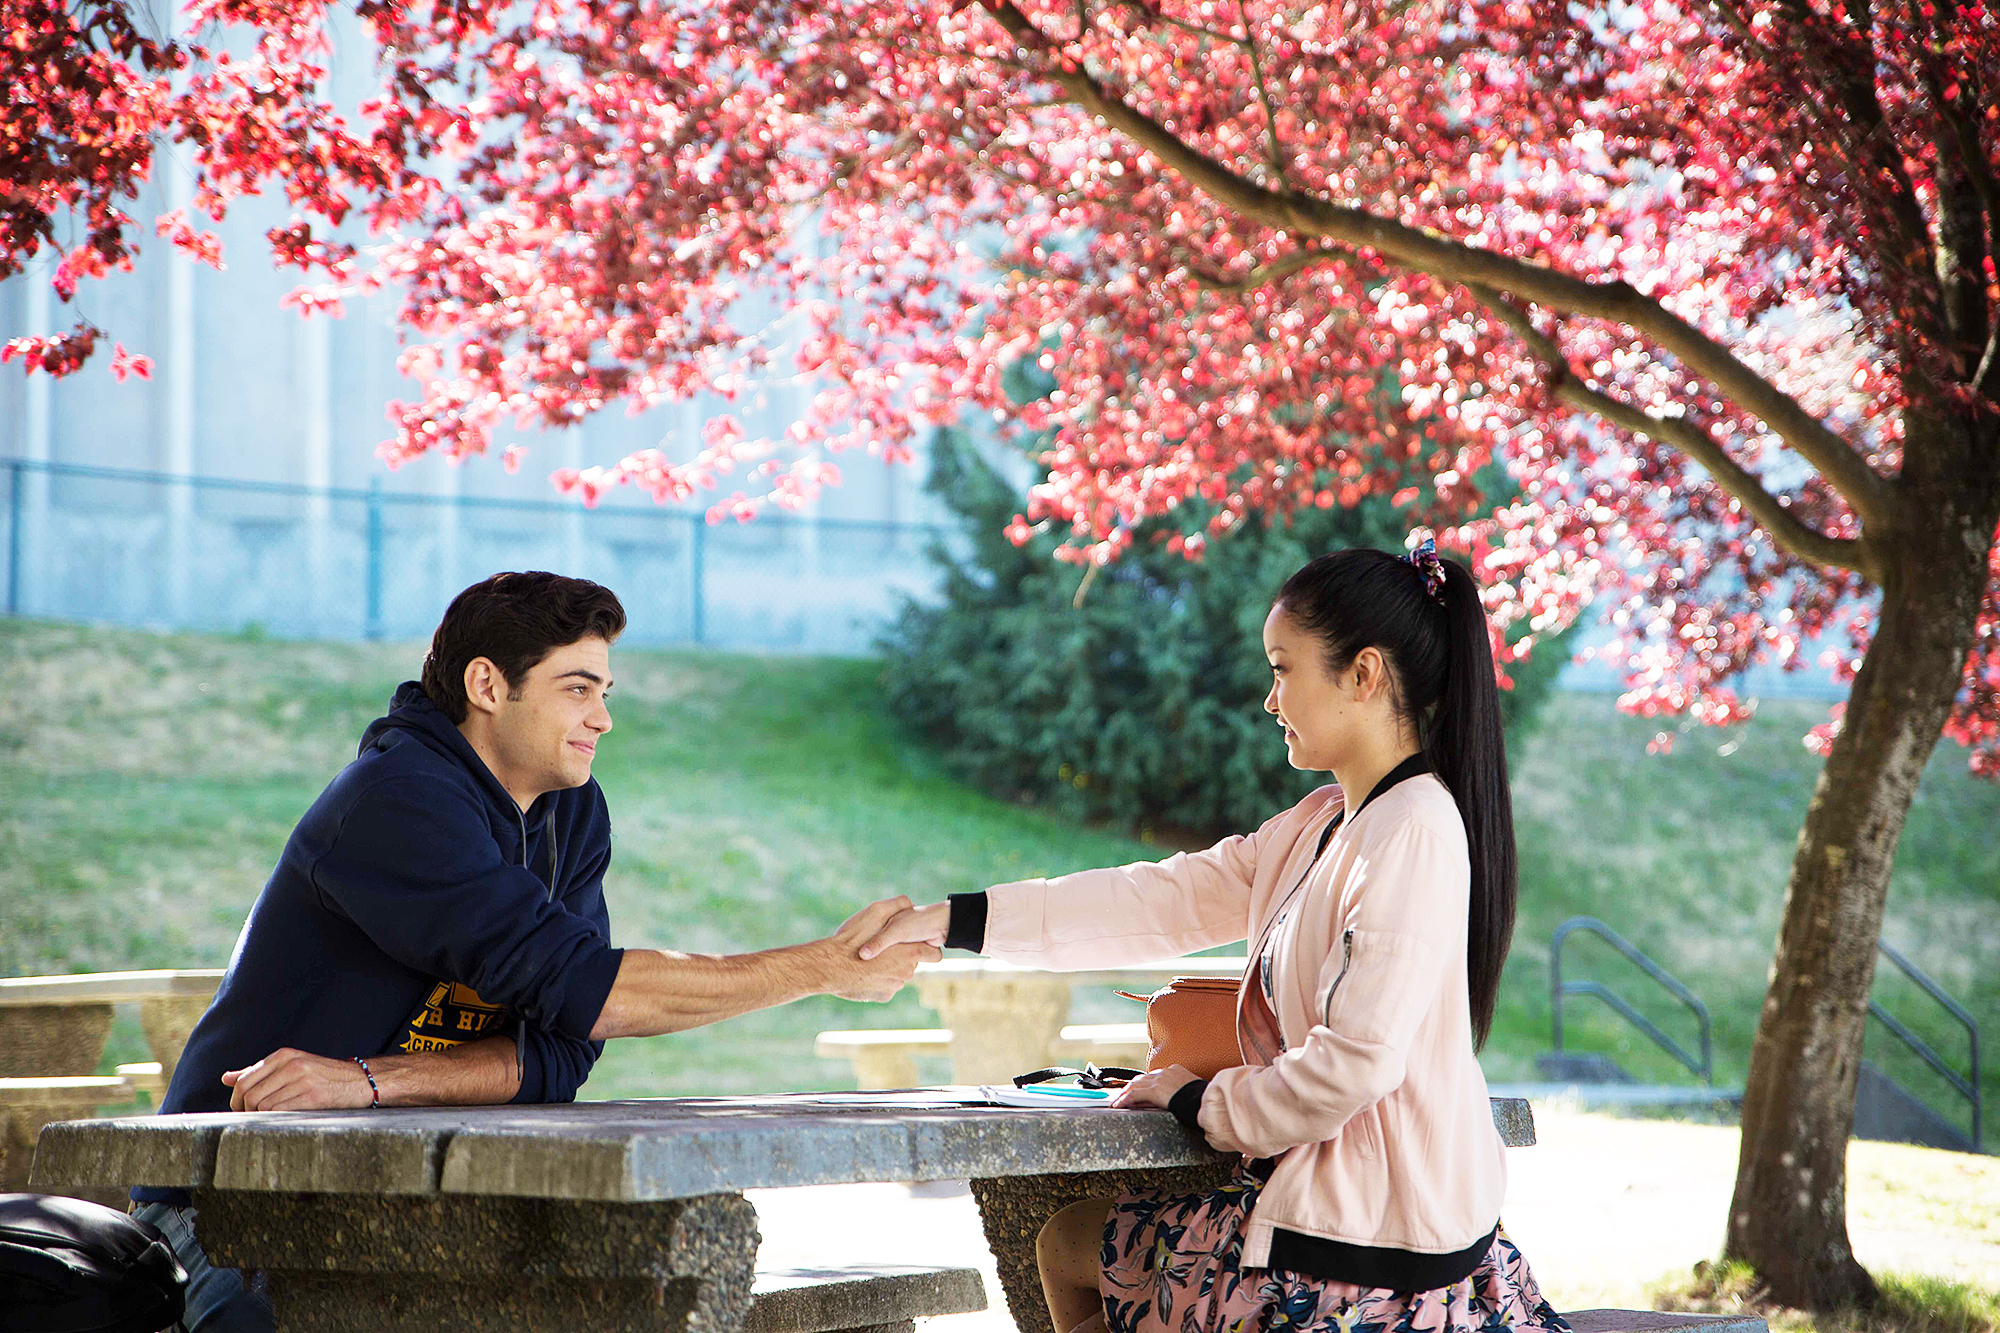 To-All-the-Boys-I've-Loved-Before-noah-returning-sequel - Lana Condor and Noah Centineo will reprise their roles as Lara Jean Covey and Peter Kavinsky, respectively. The actors' involvement in the sequel was announced in Netflix's December 2018 letter.